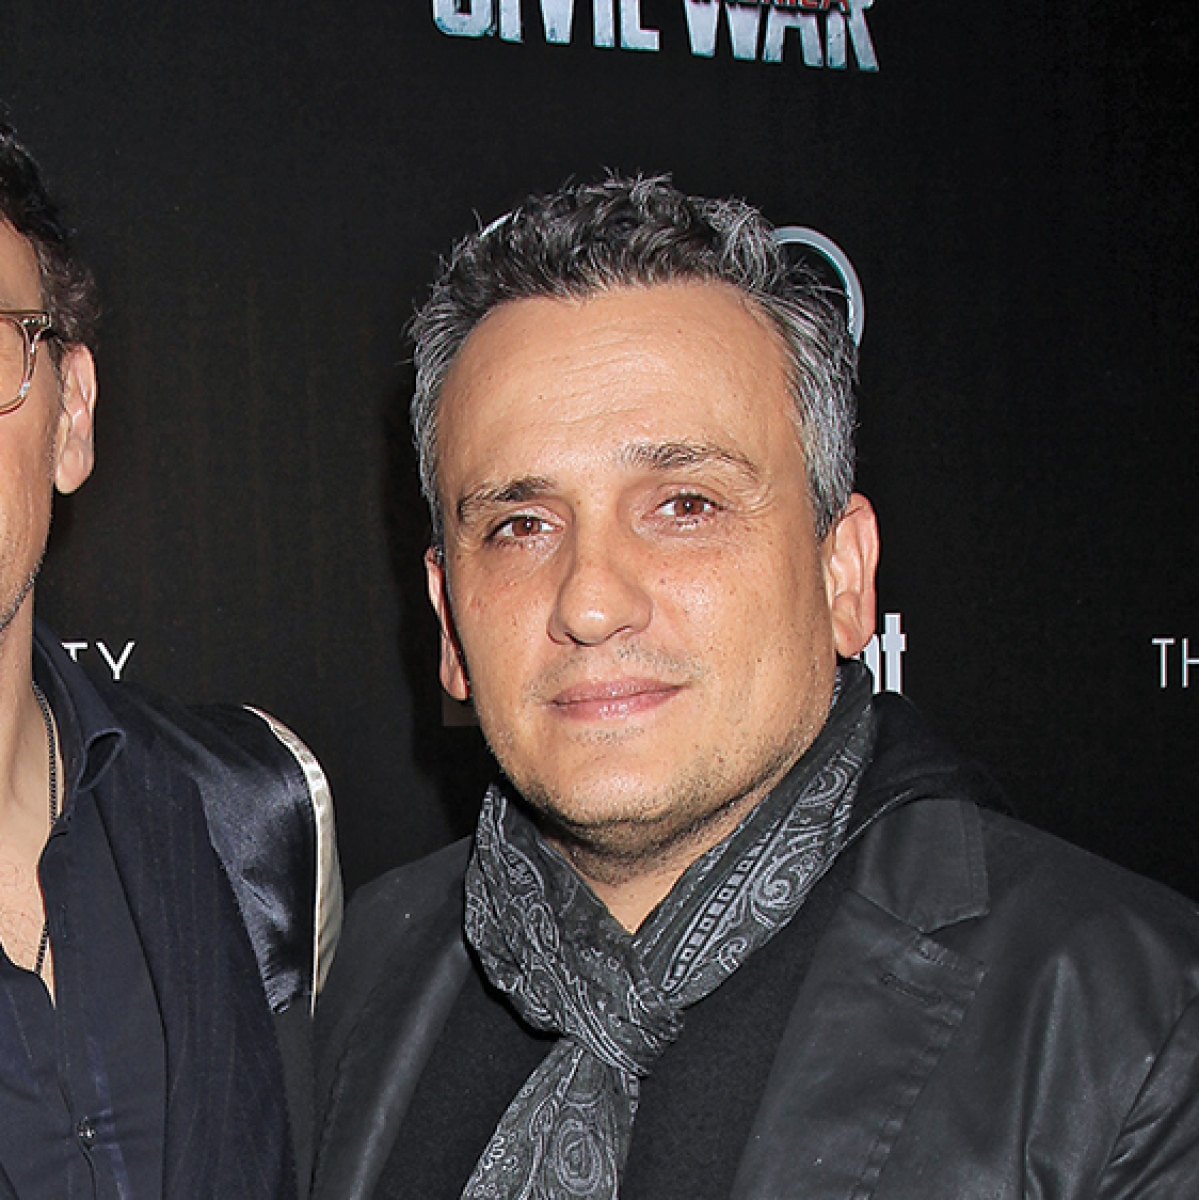 Cinema is a film that can bring people together: Russo brothers respond to Scorsese